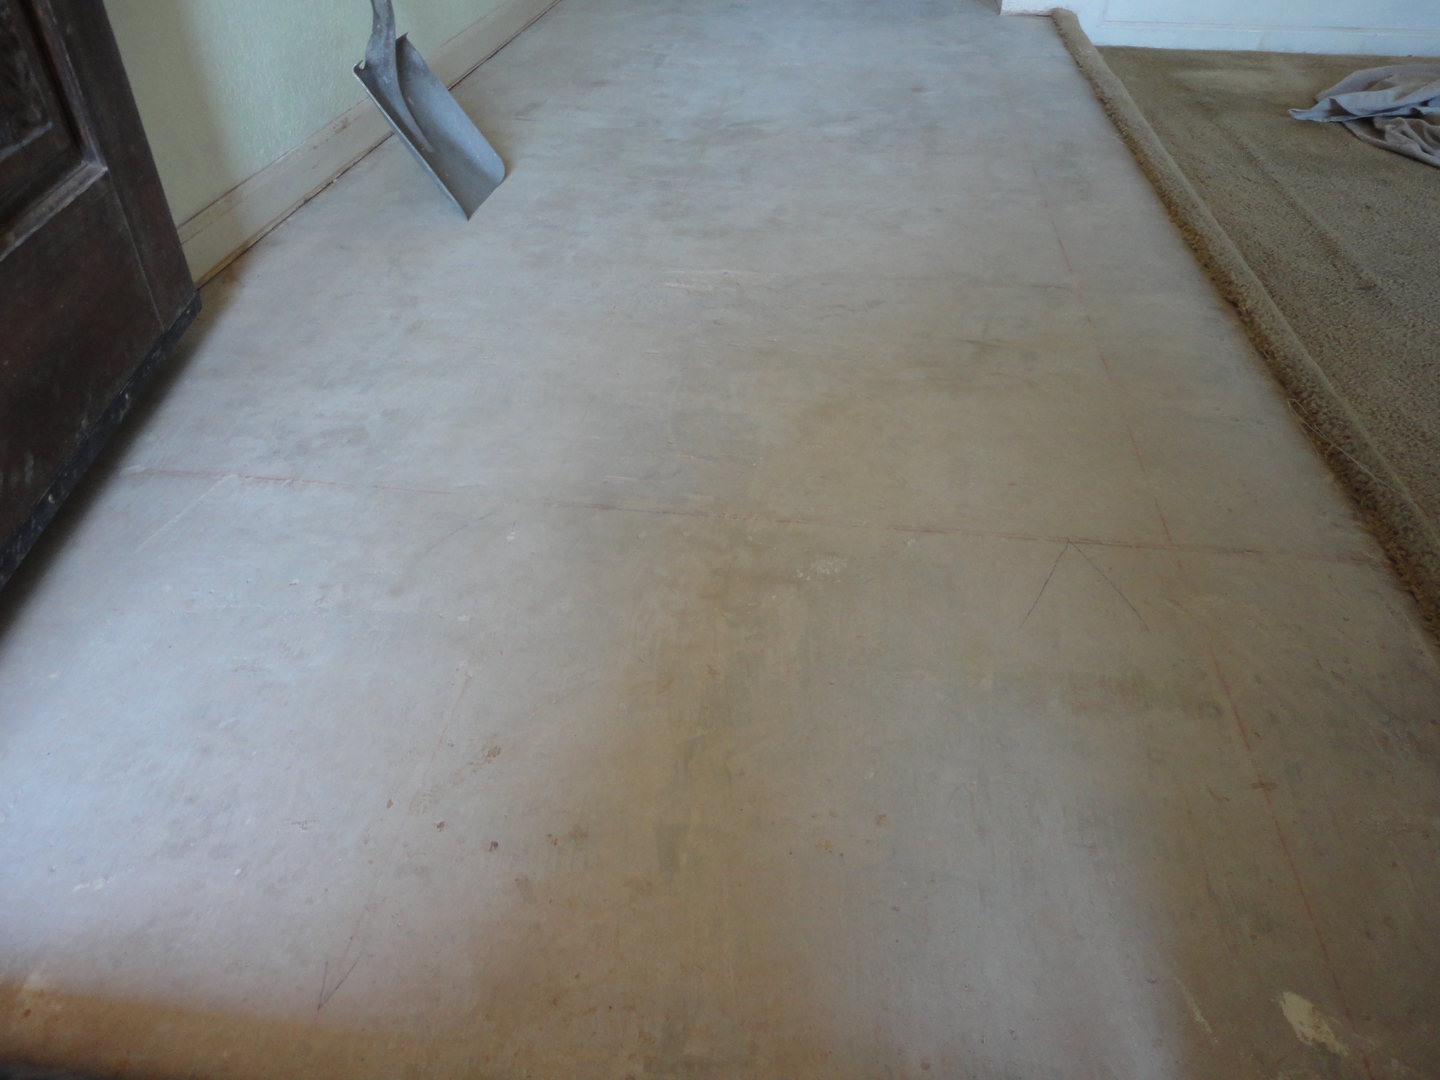 Ceramic Tile Removal - How to protect ceramic tile floors